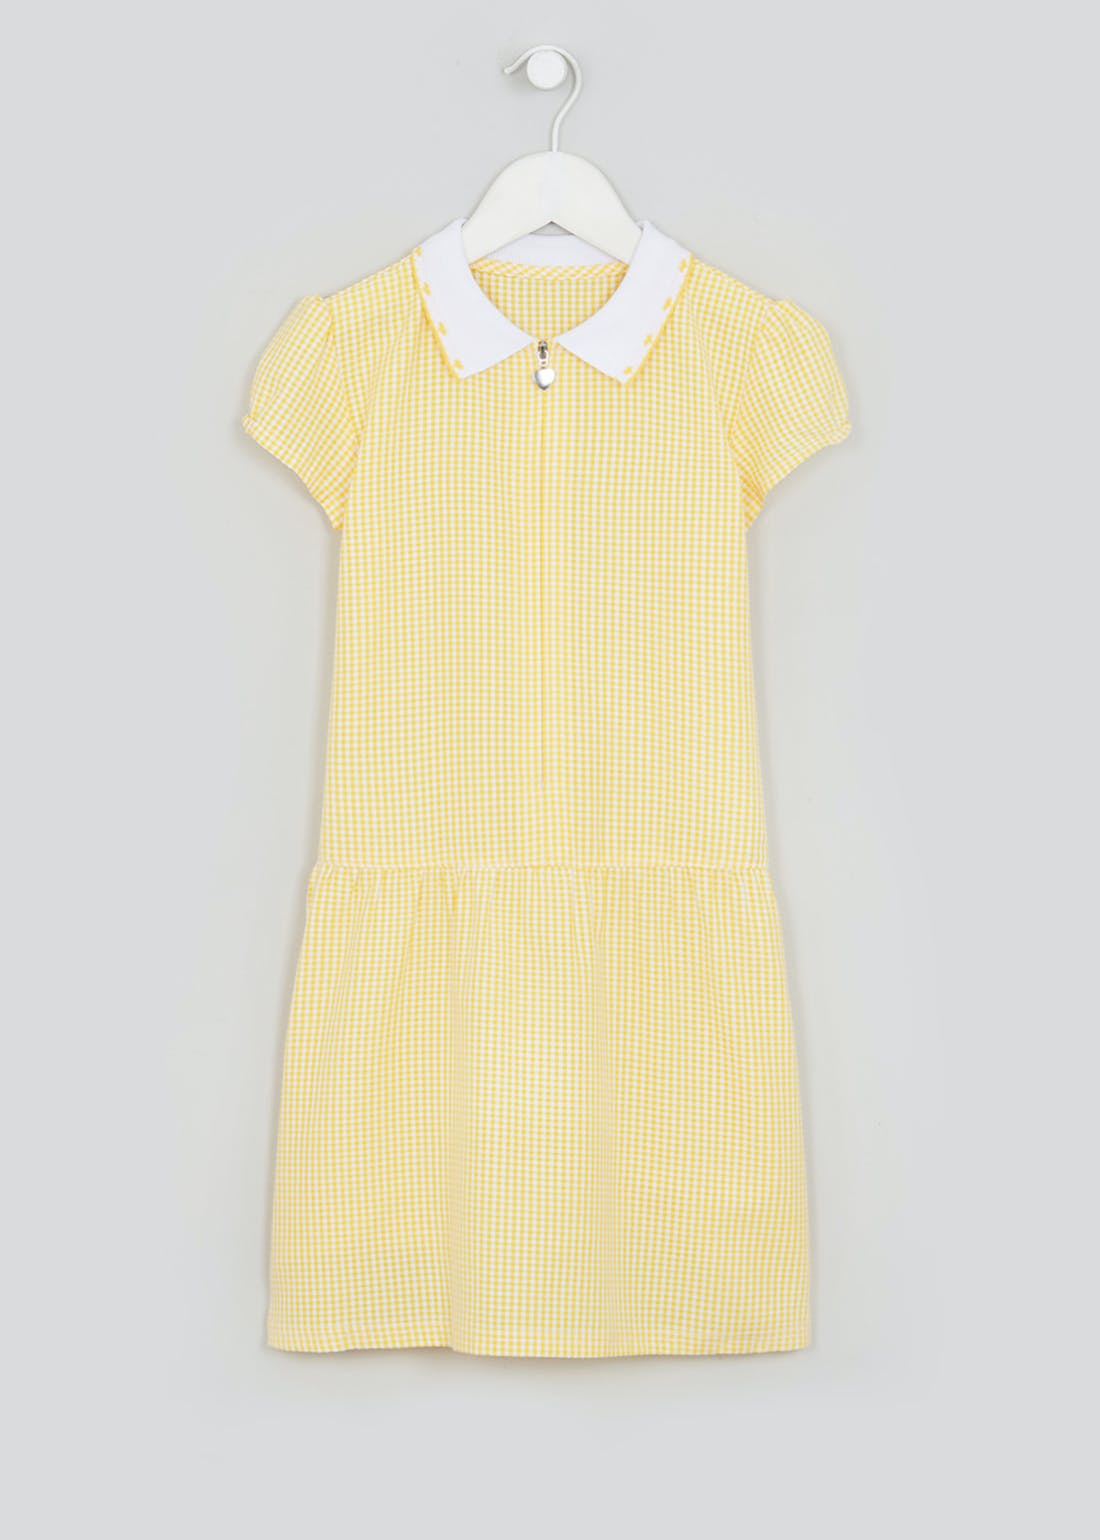 Girls Yellow Zip Front Gingham School Dress (3-14yrs)